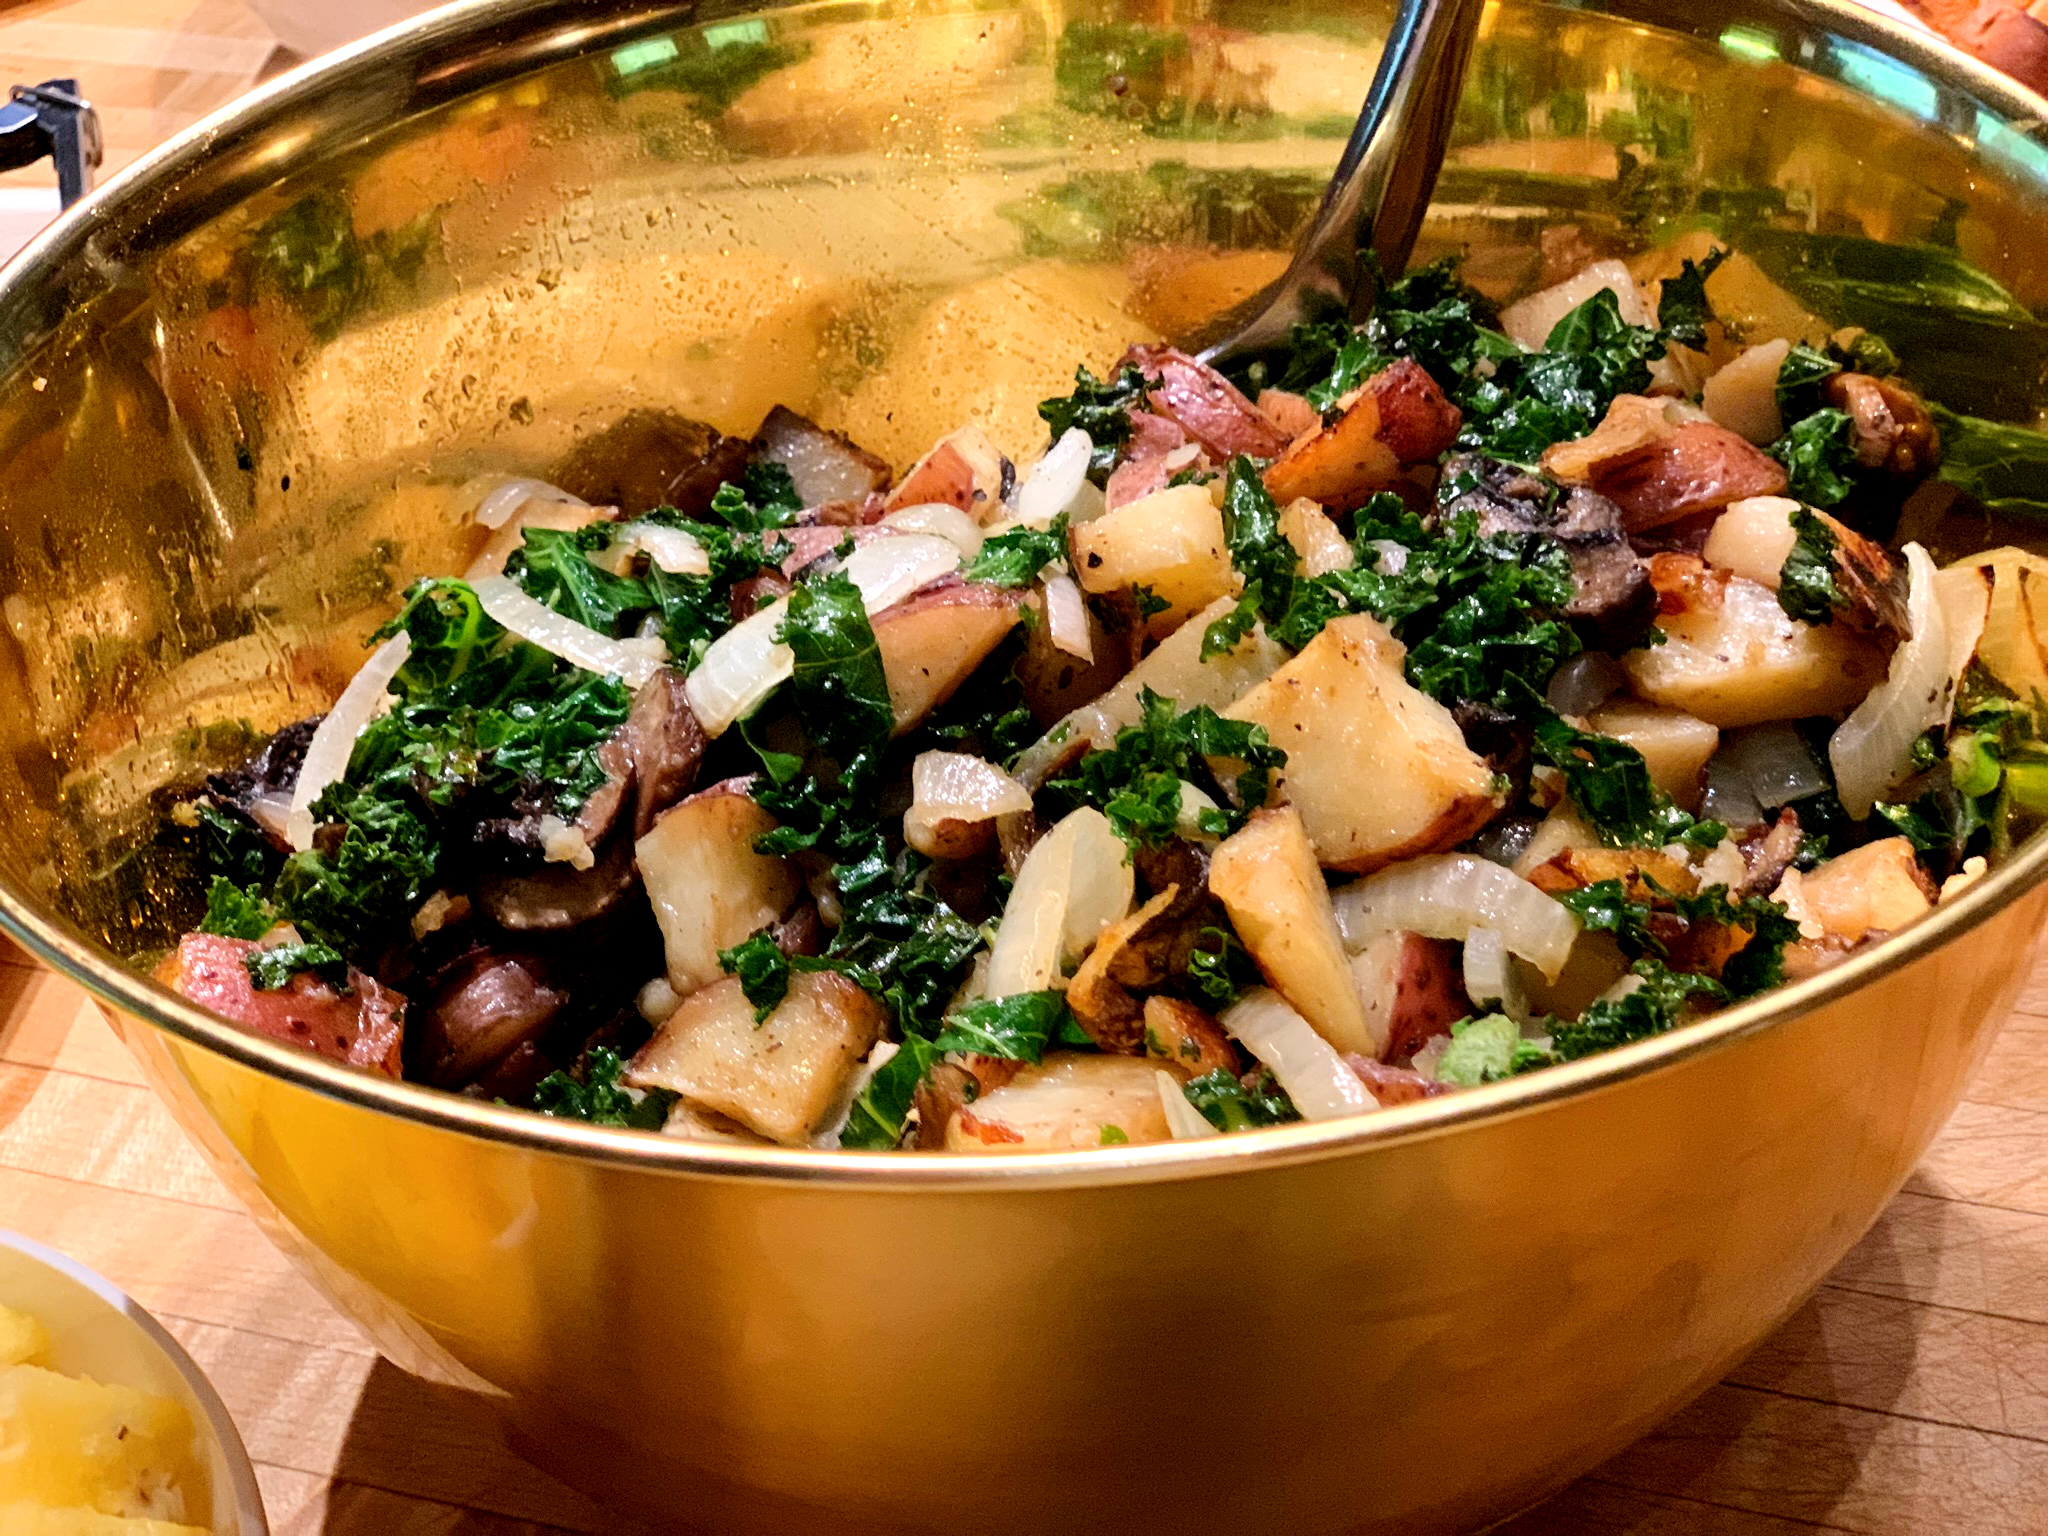 Roasted potato, kale, mushroom